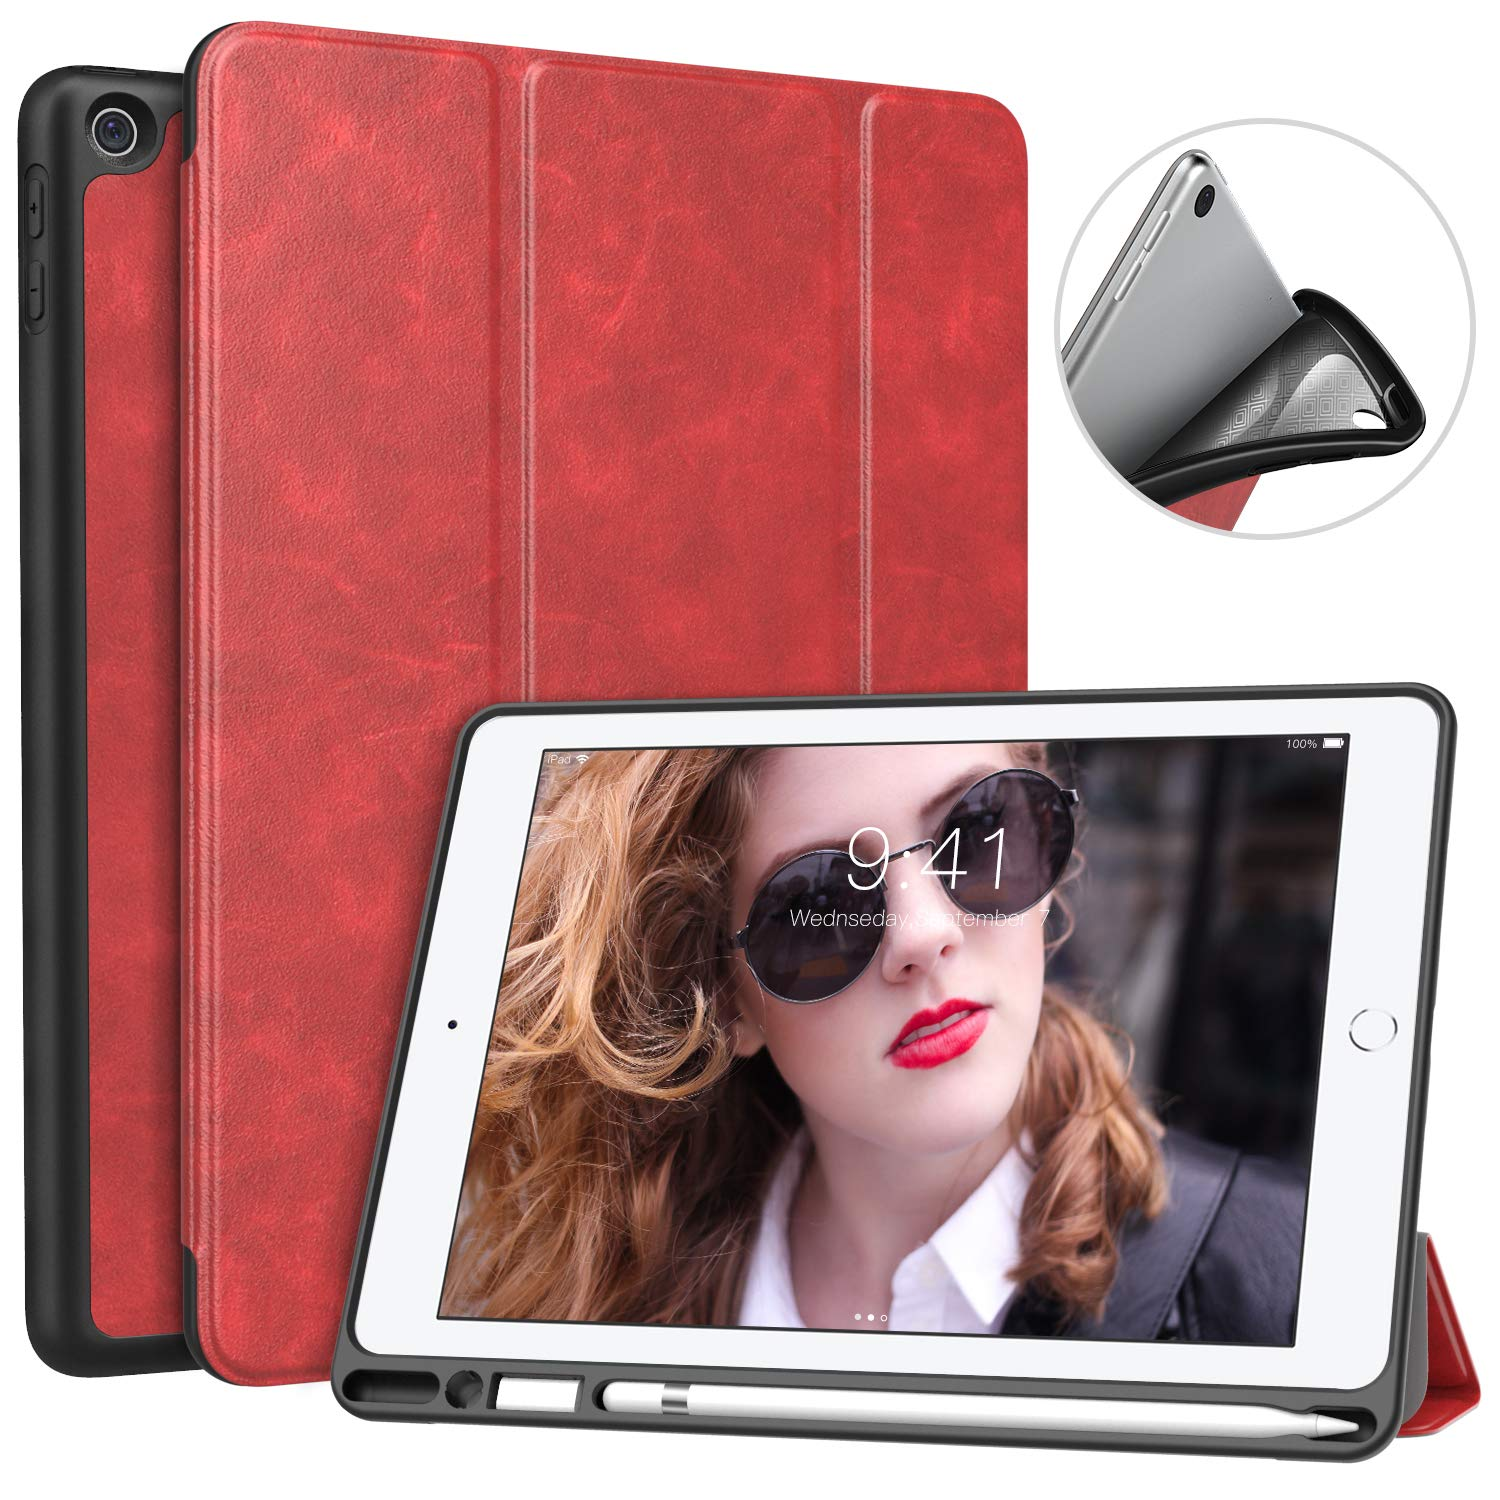 MoKo Case for iPad 9.7 2018 with Apple Pencil Holder - Slim Lightweight Smart Shell Stand Cover Case with Auto Wake/Sleep for Apple iPad 9.7 Inch 2018 Released Tablet (A1893/A1954), Black Moko Cases 736313054101-0730